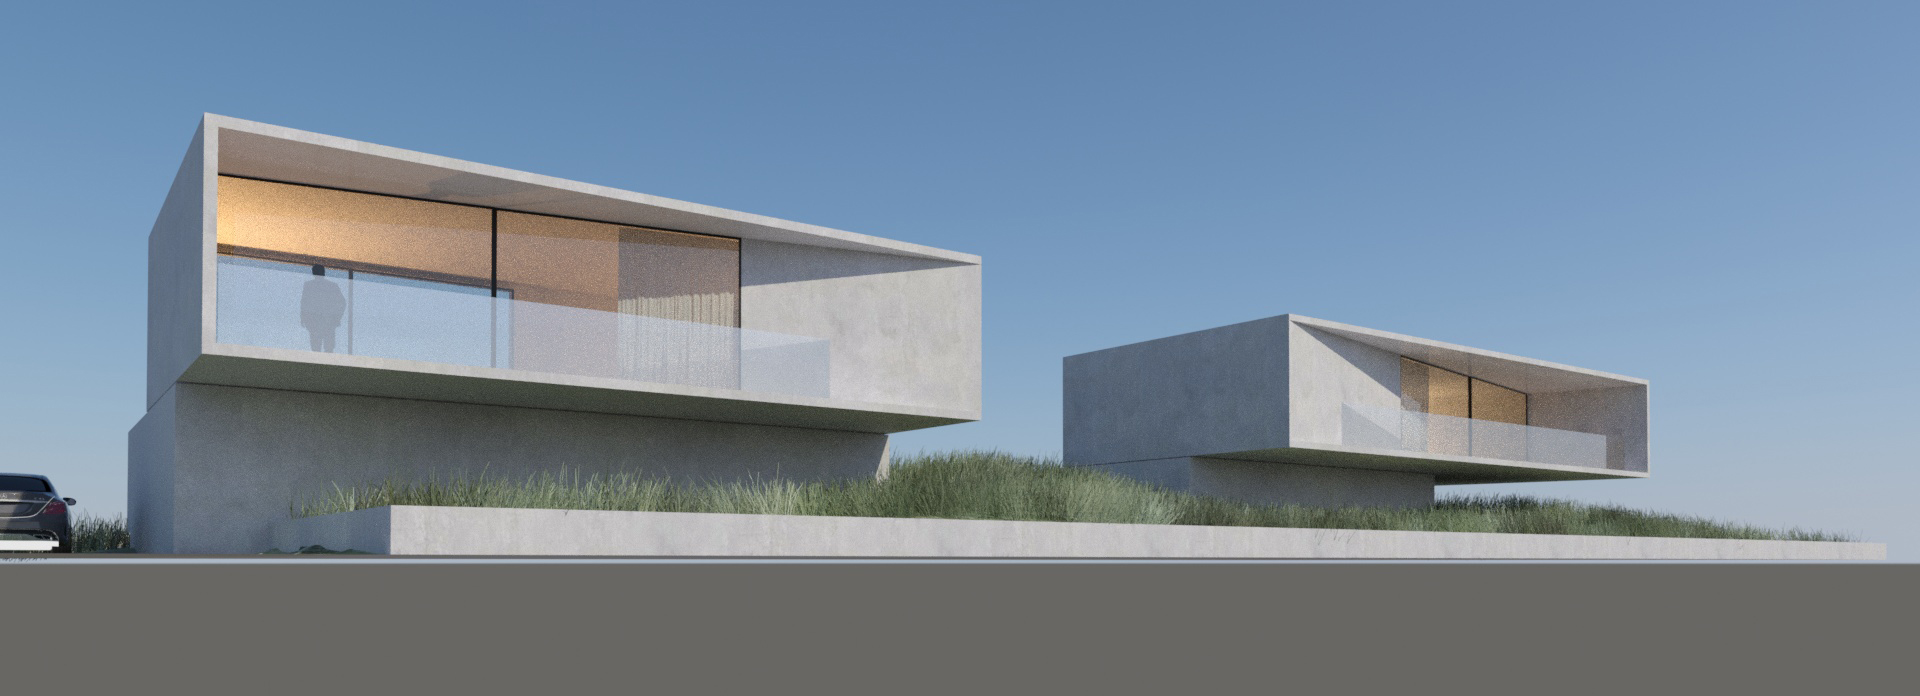 Gemini,  Oostduinkerke Belgium  2 summer houses with perfect views. Side by side, seemingly similar but different.  Application of precast concrete panels. (2)